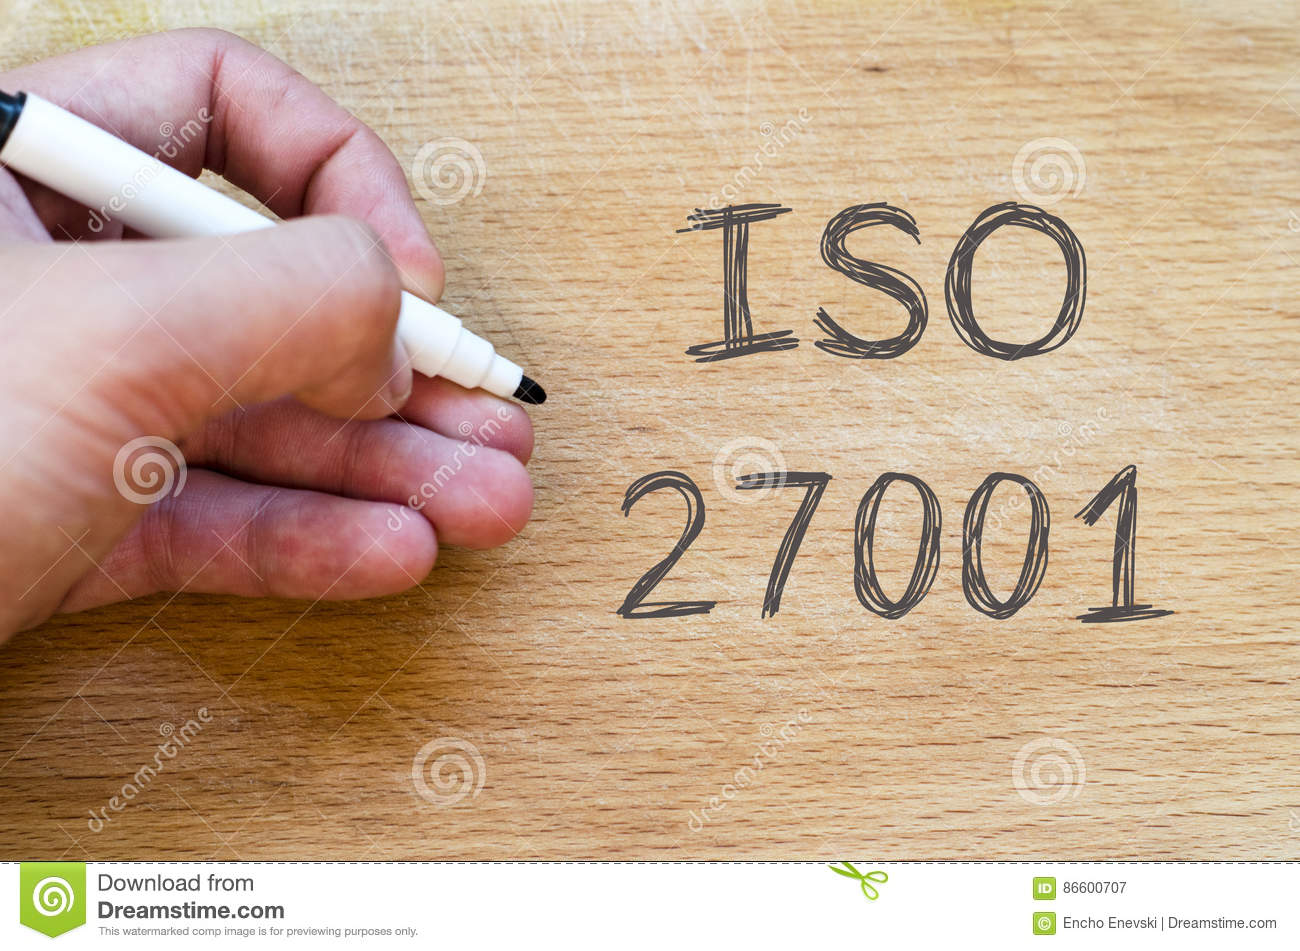 Iso 27001 text concept